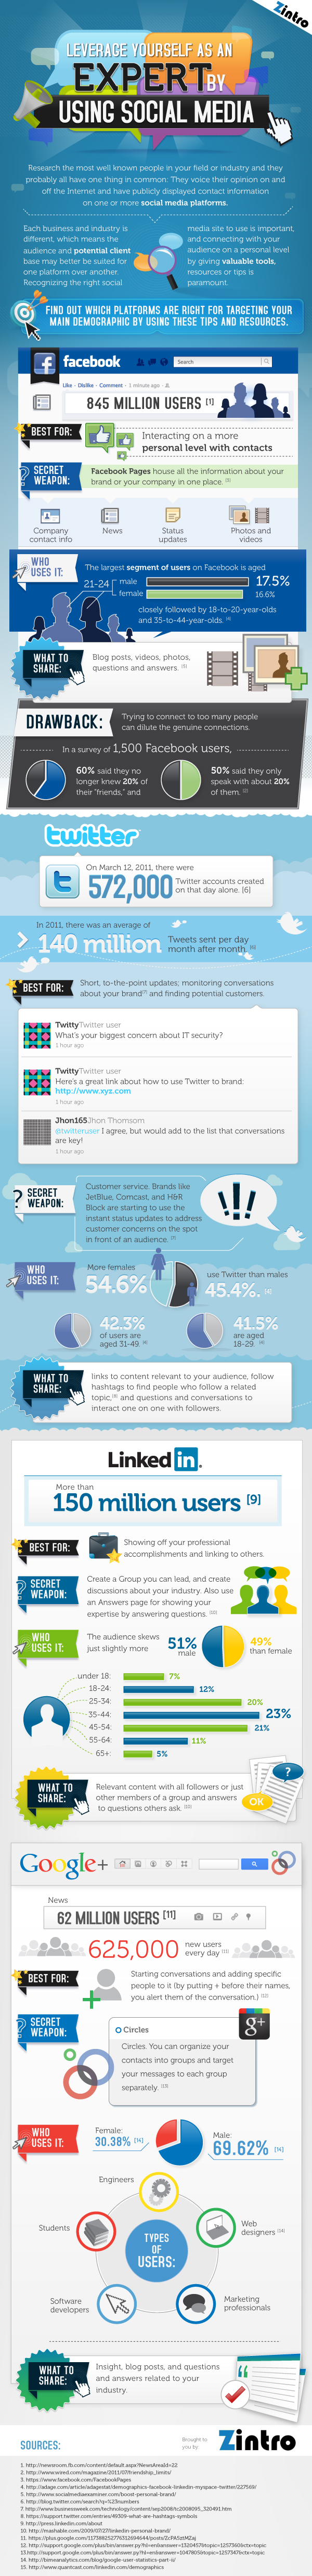 leveraging social media Leveraging Social Media to Showcase Your Expertise [INFOGRAPHIC]